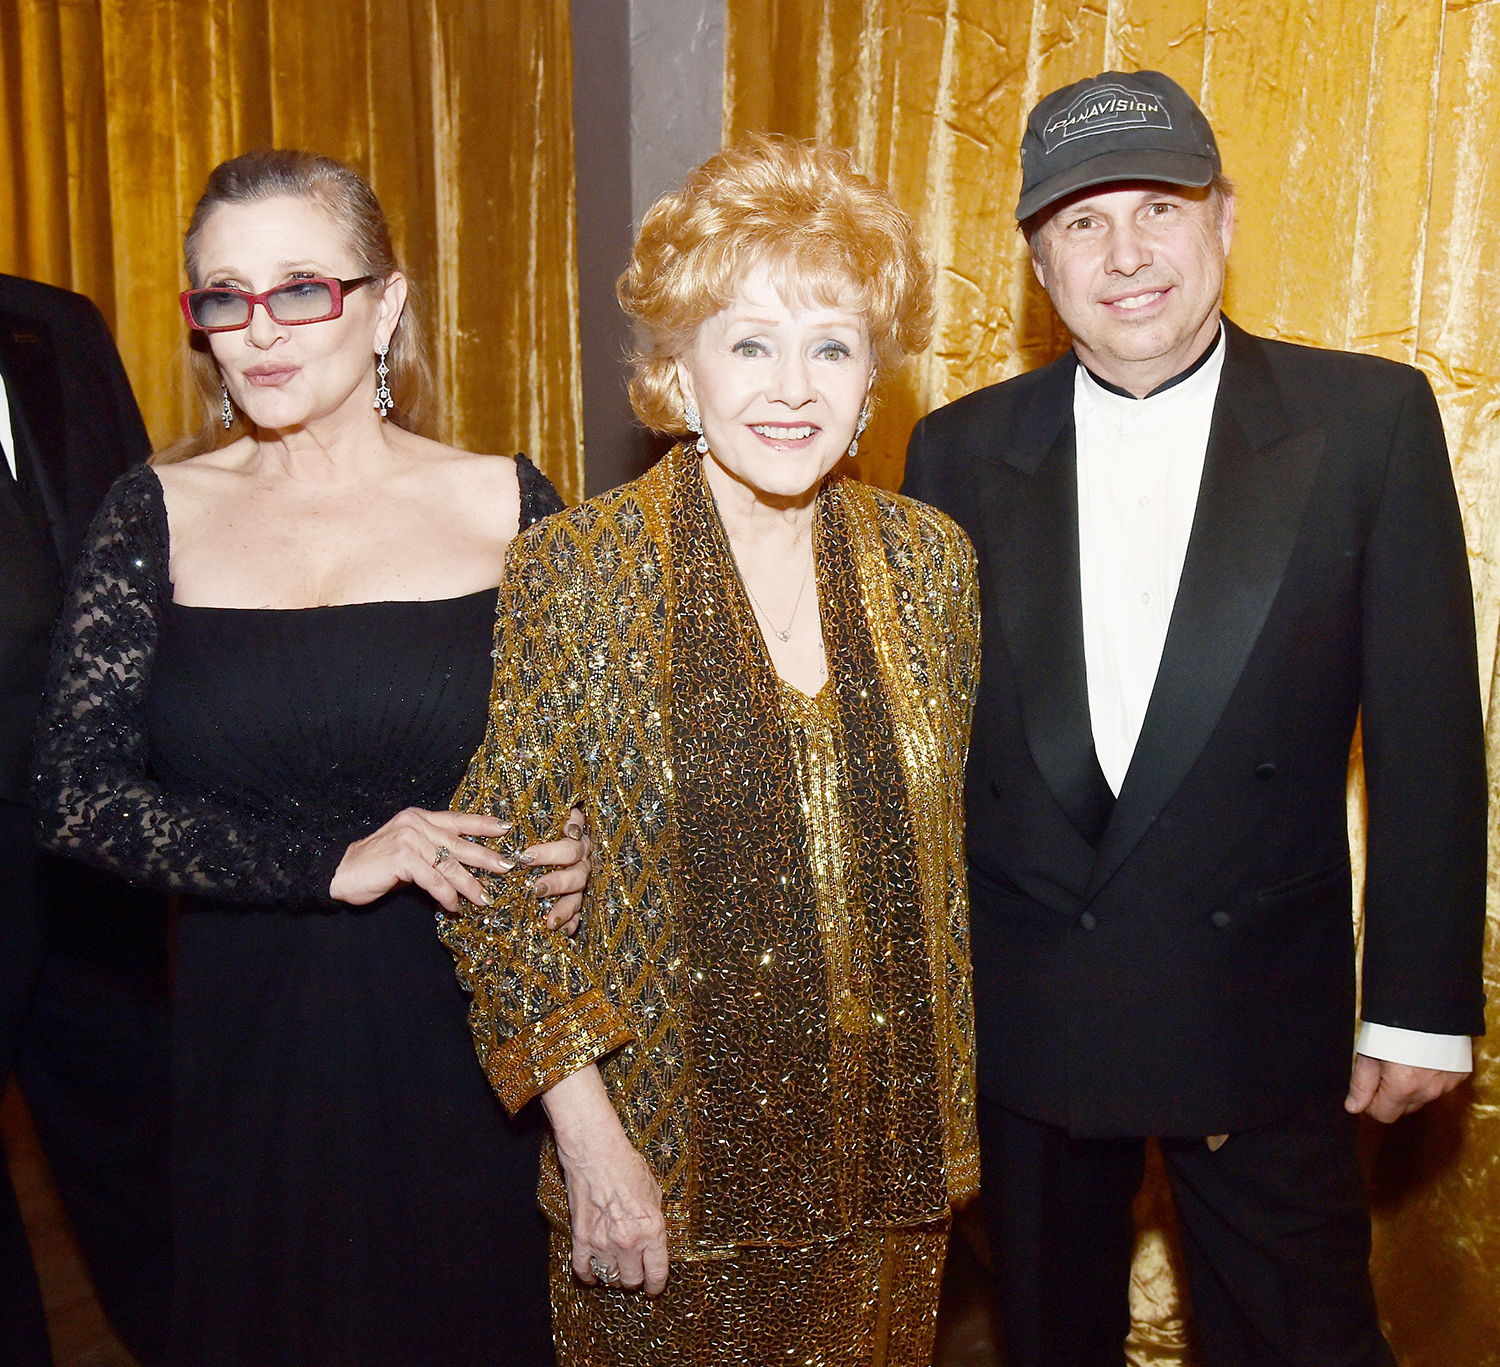 Carrie Fisher, Debbie Reynolds and Todd Fisher at TNT's 21st Annual Screen Actors Guild Awards on Jan. 25, 2015, in Los Angeles.